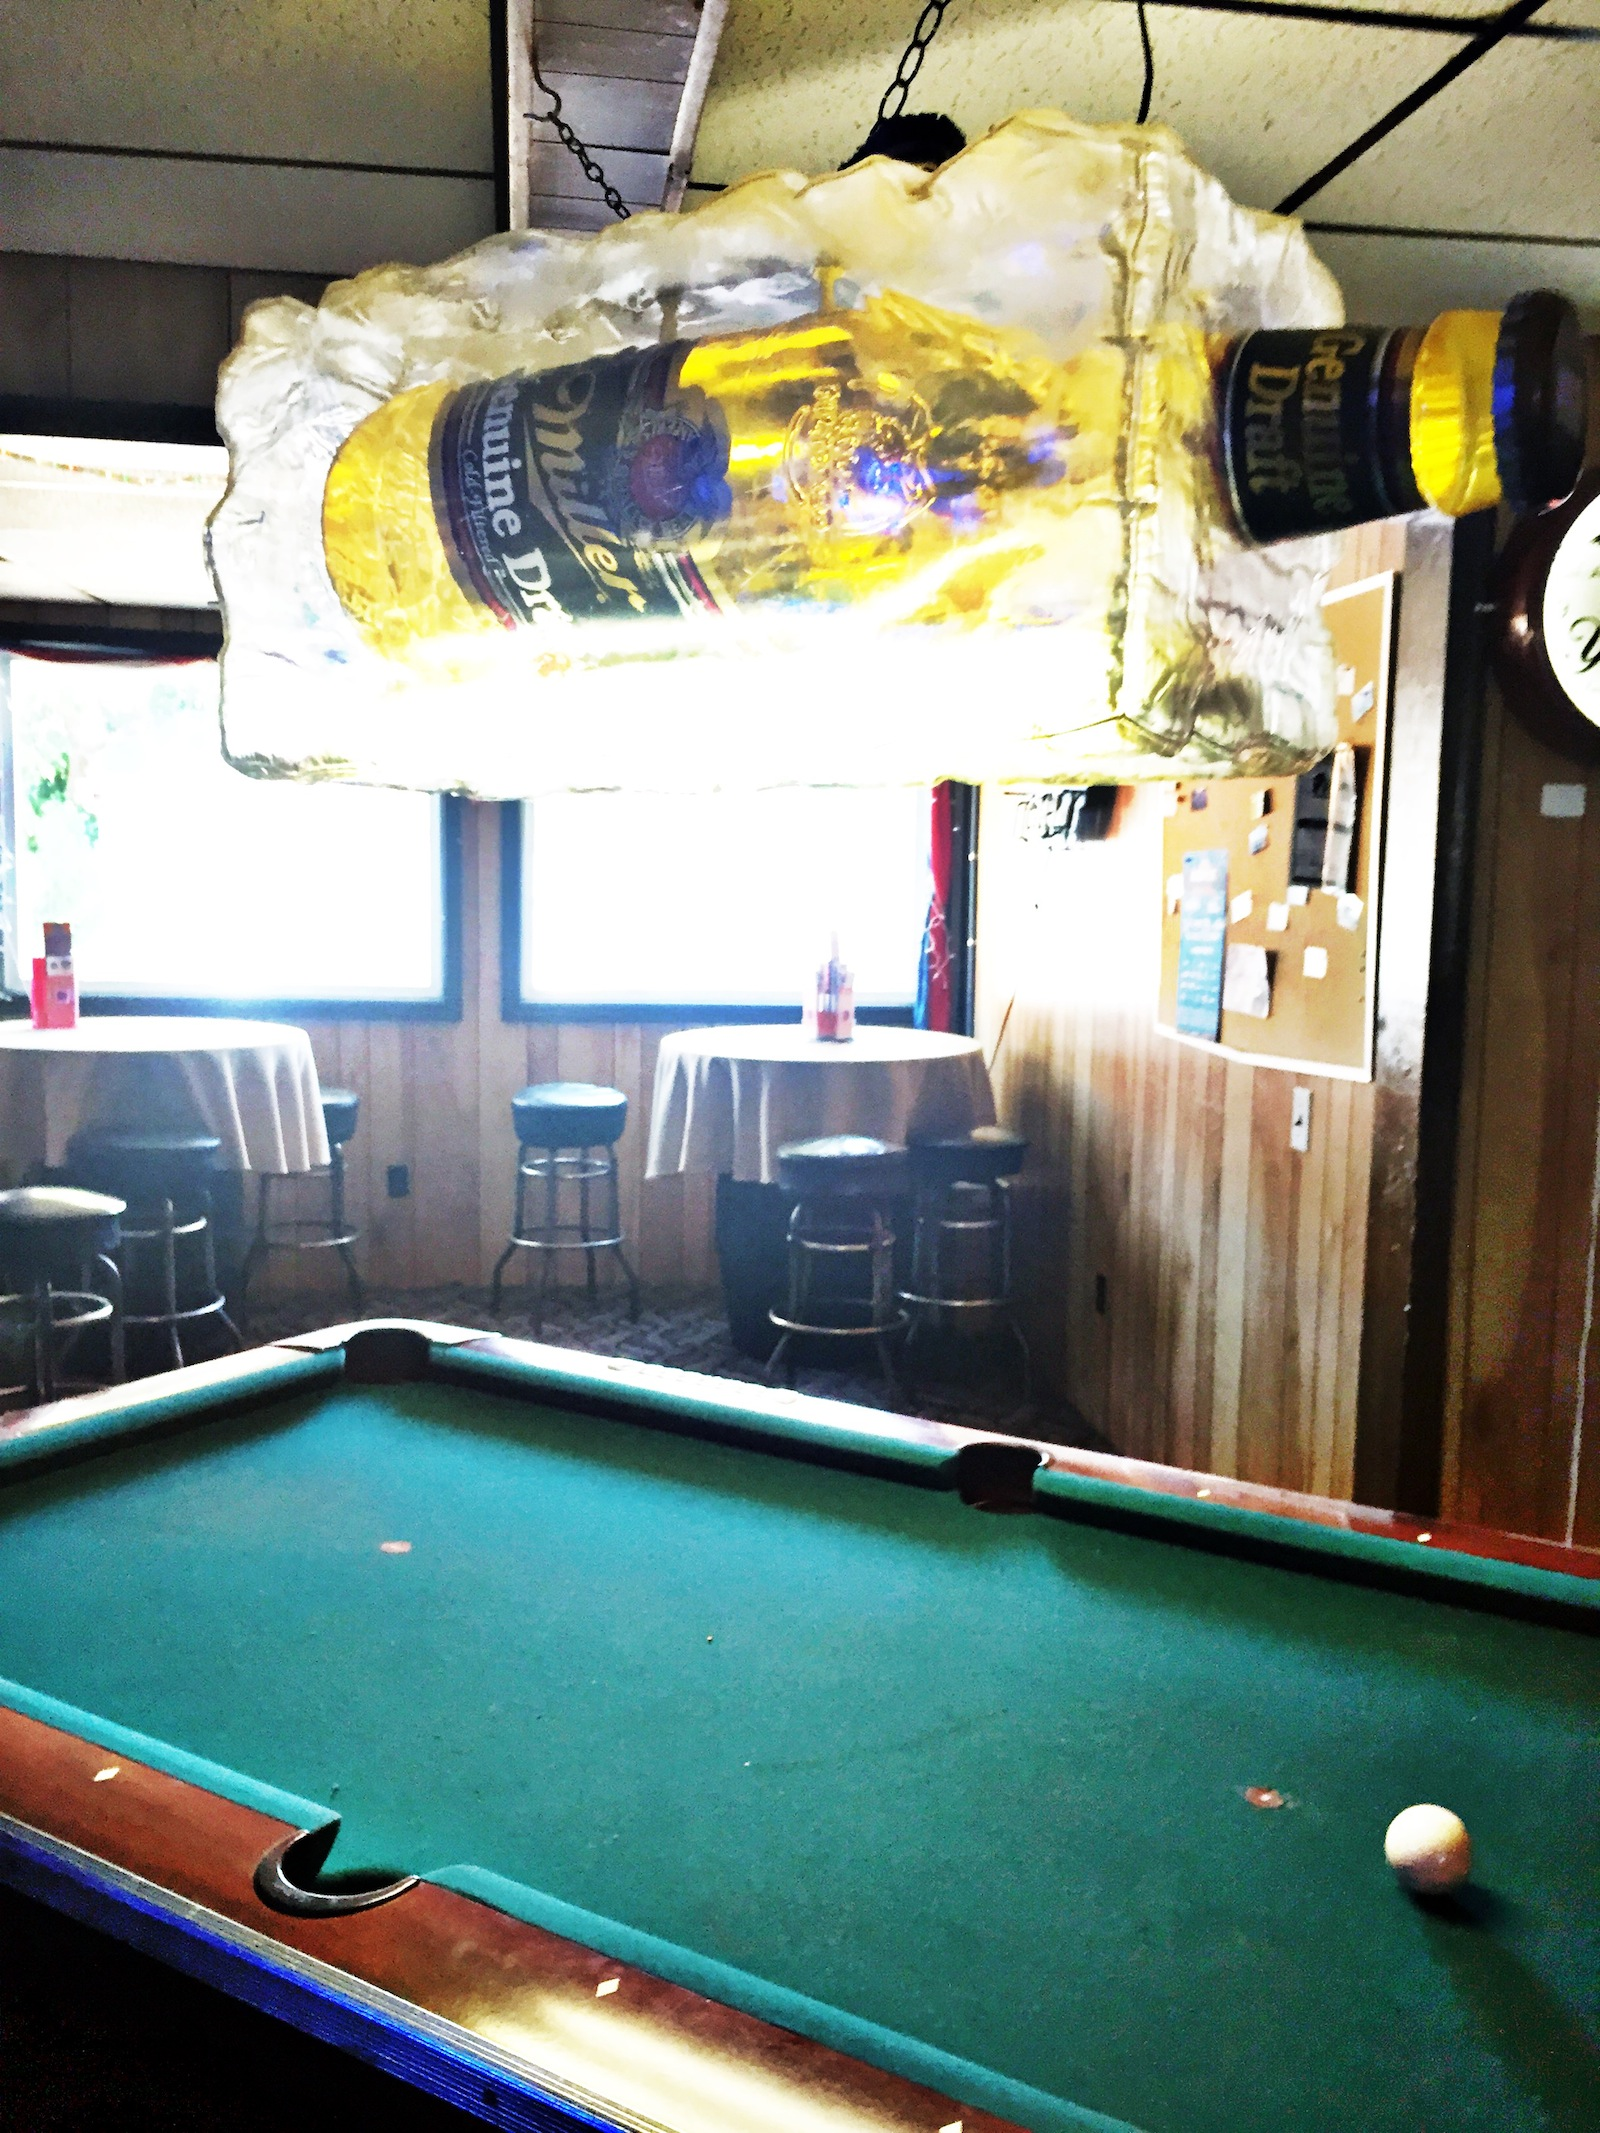 The Pool Table (Betty's Grill)